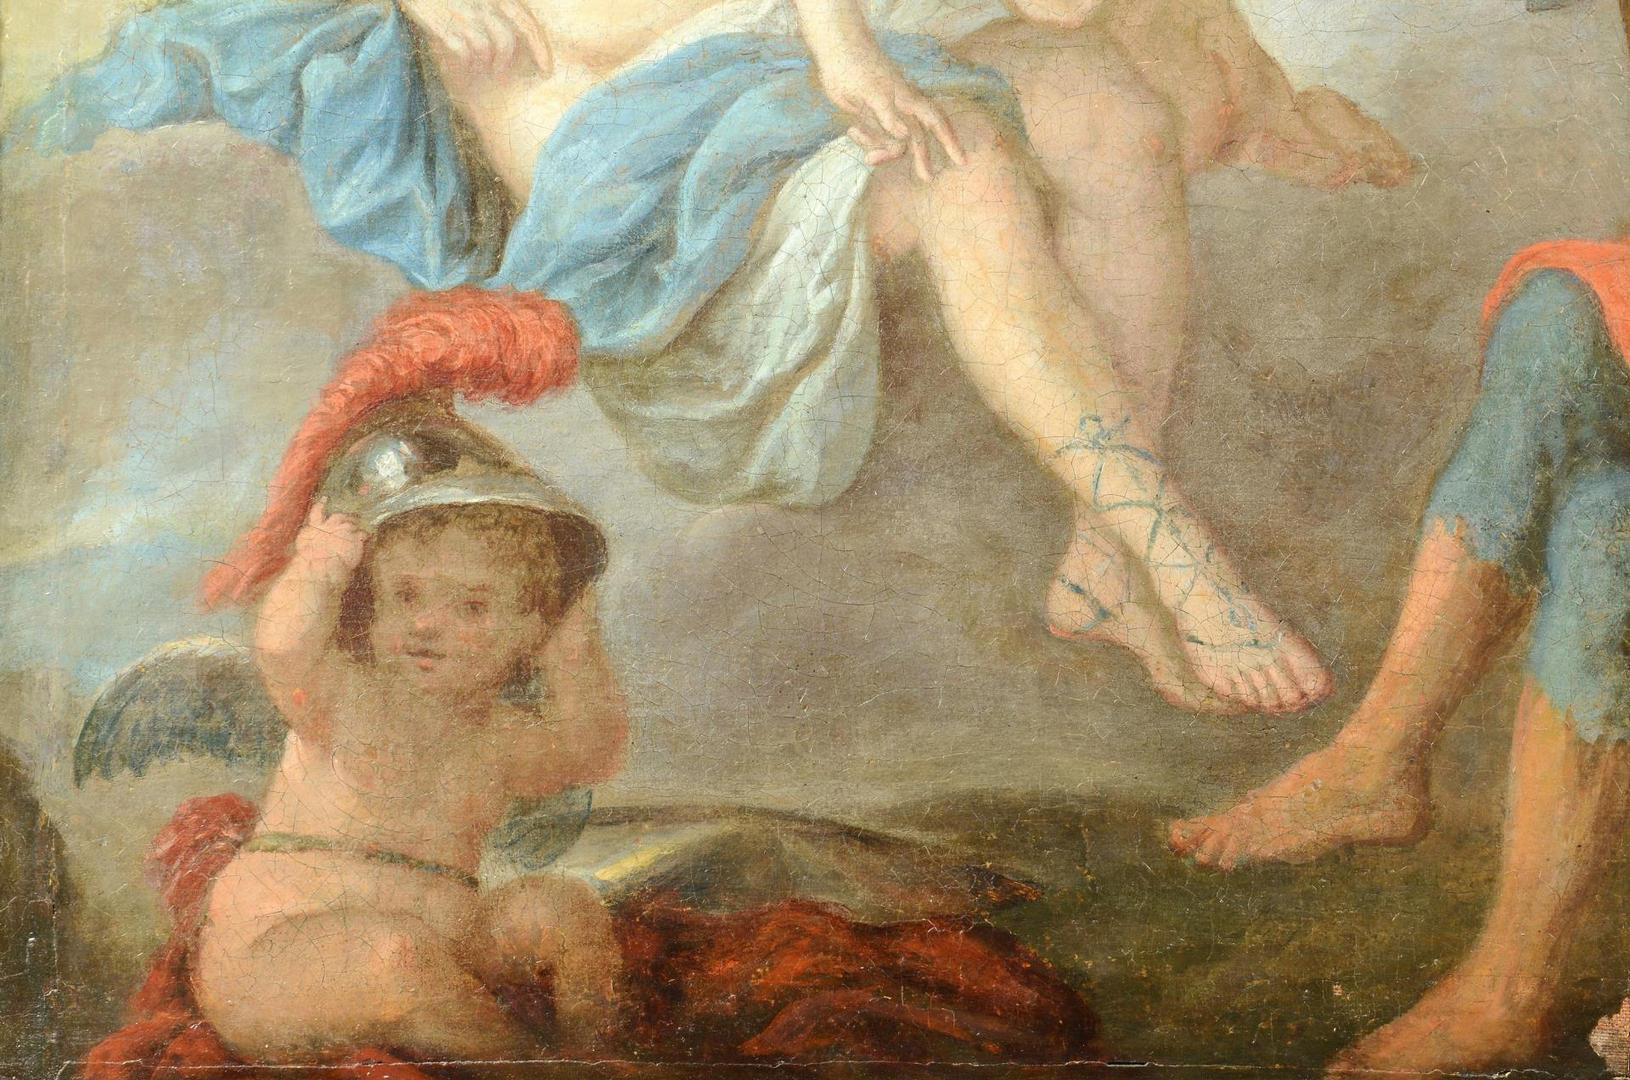 Lot 672: French School 18th c., Venus & Vulcan mythological